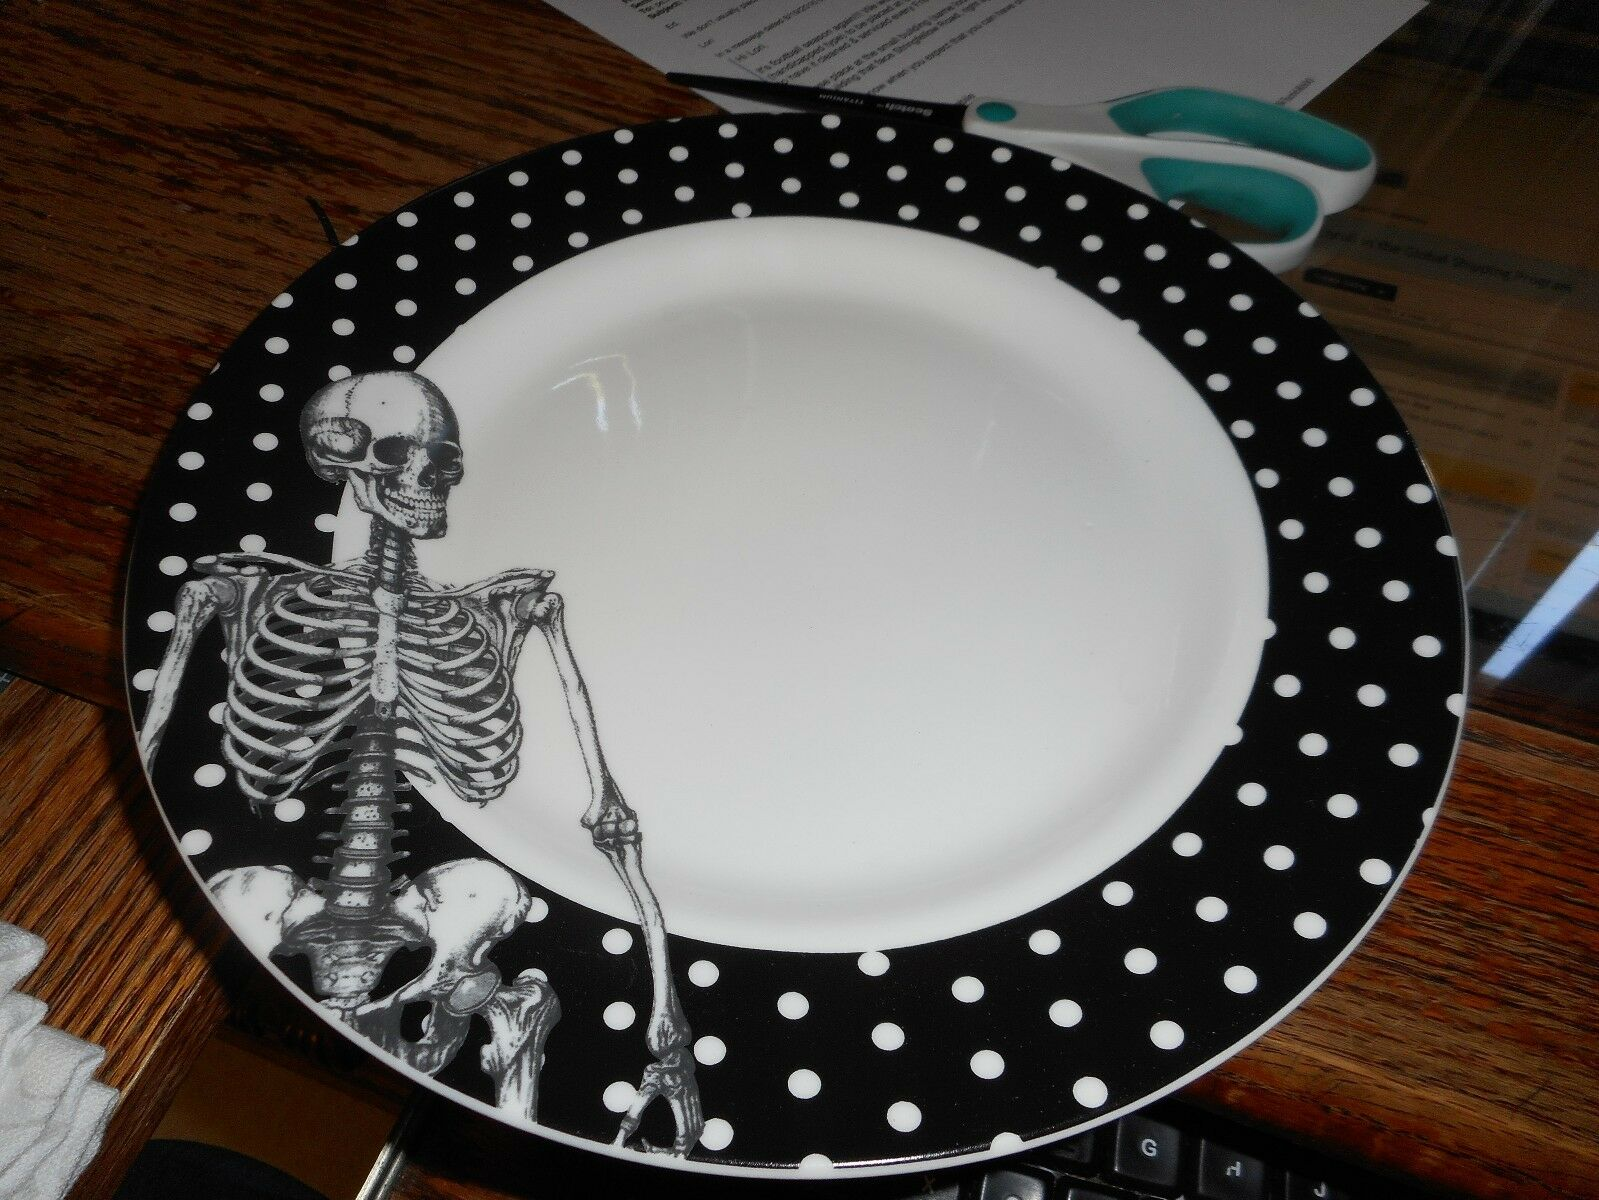 Black ... & Black And White Polka Dot Dinner Plates - Castrophotos